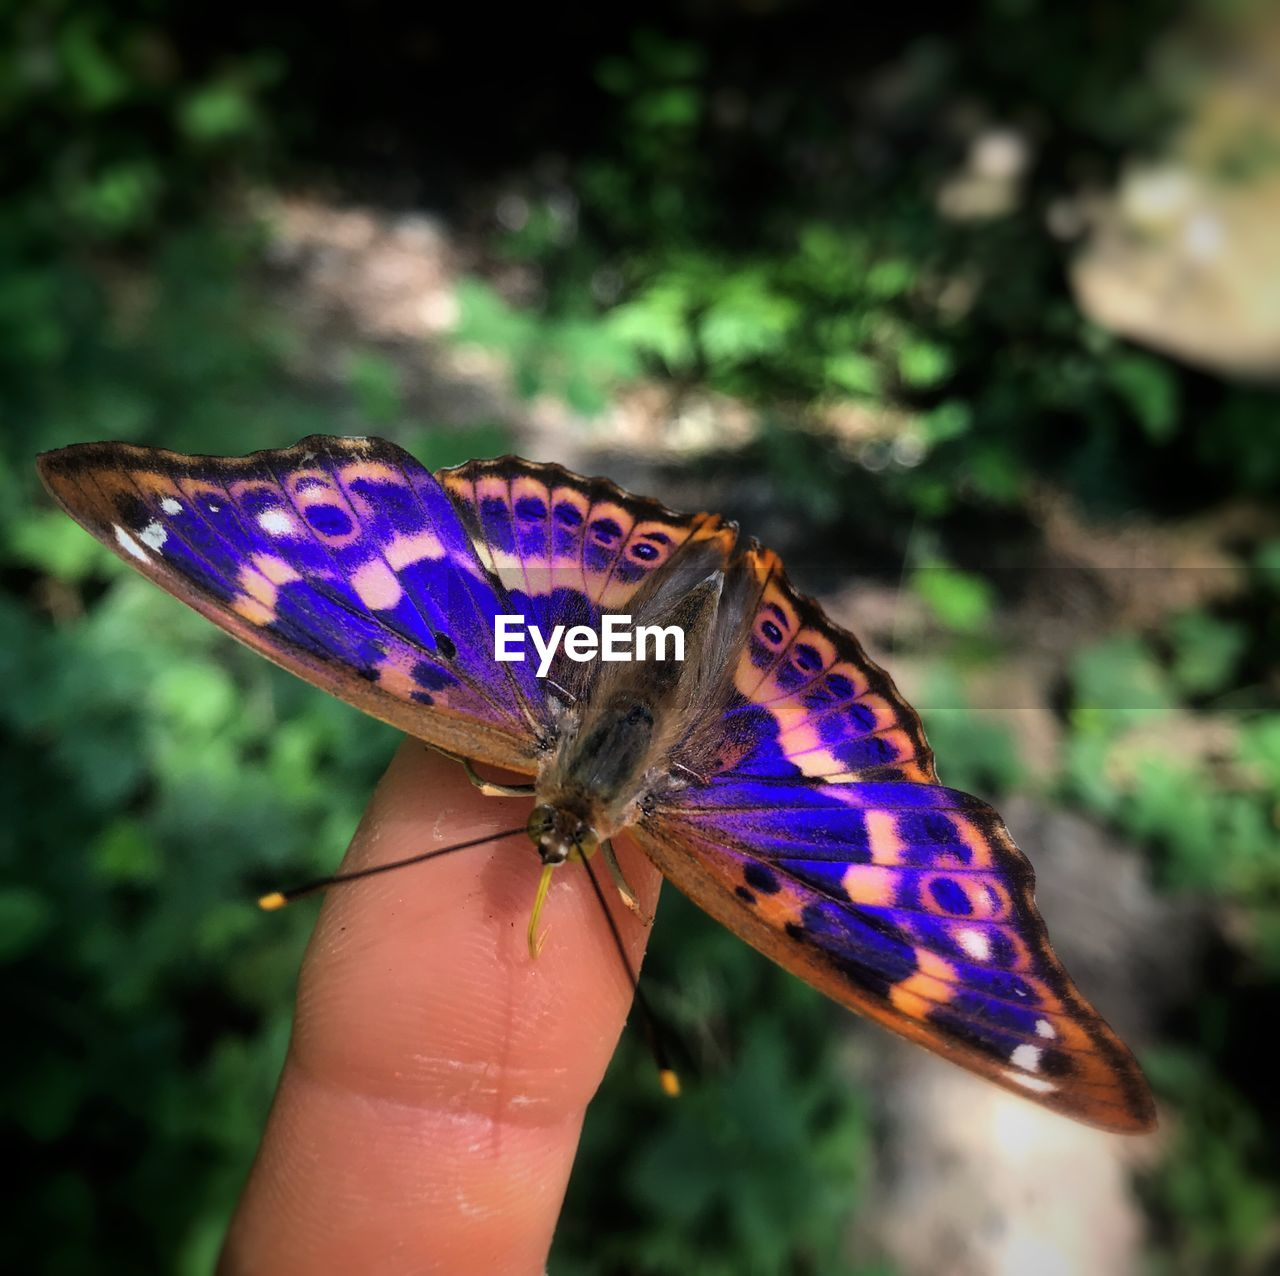 human body part, human hand, hand, one person, real people, holding, body part, finger, human finger, unrecognizable person, one animal, focus on foreground, animals in the wild, close-up, animal wildlife, lifestyles, day, animal wing, outdoors, butterfly - insect, purple